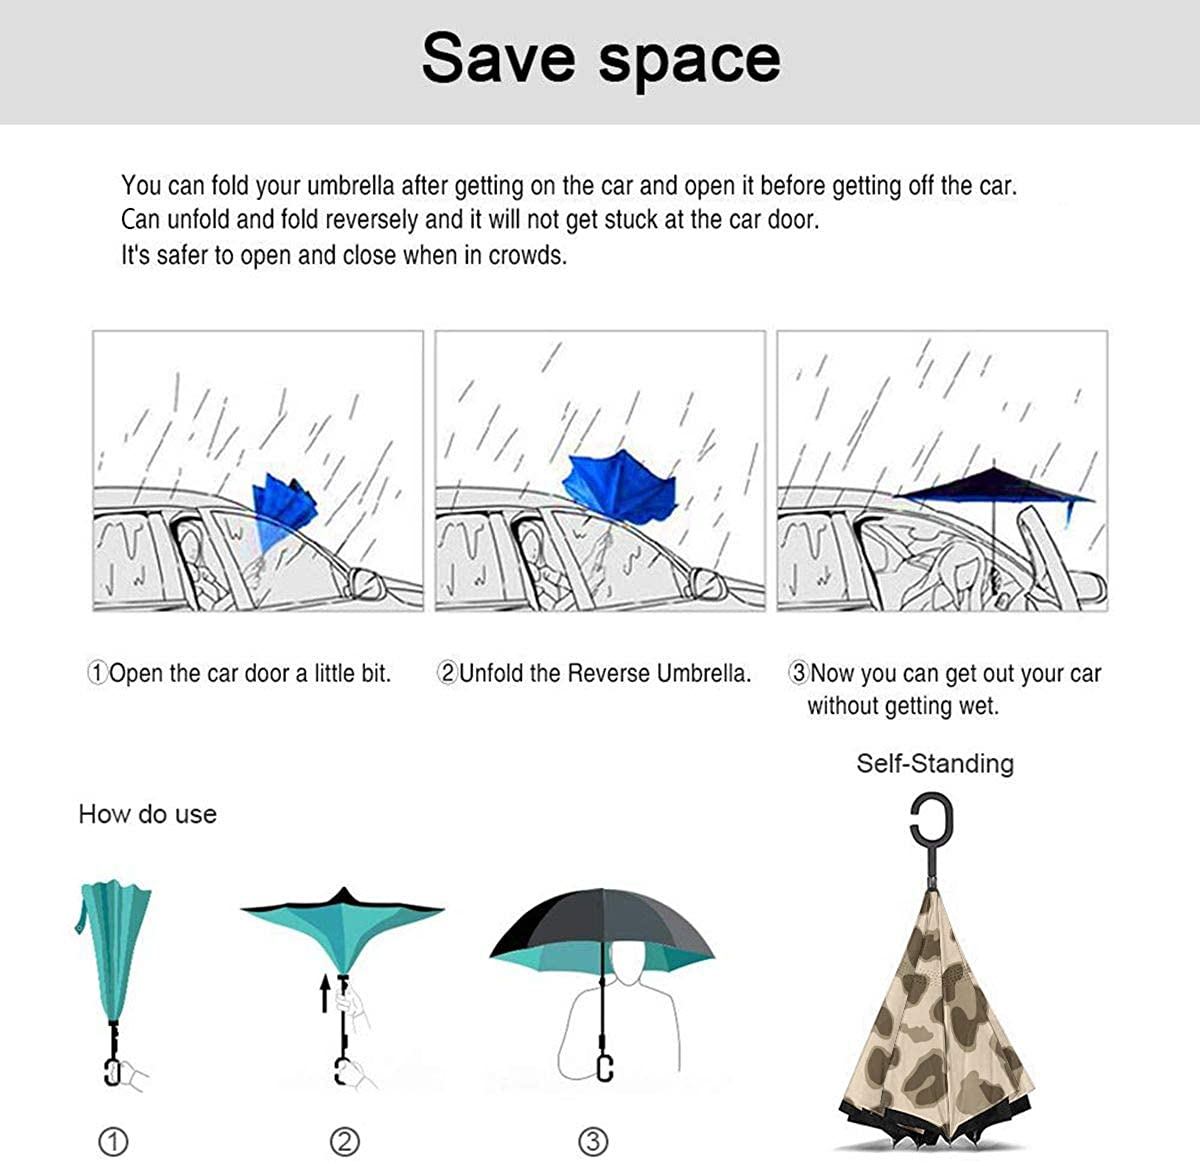 Reverse Umbrella Double Layer Inverted Umbrellas For Car Rain Outdoor With C-Shaped Handle Light Leopard Customized